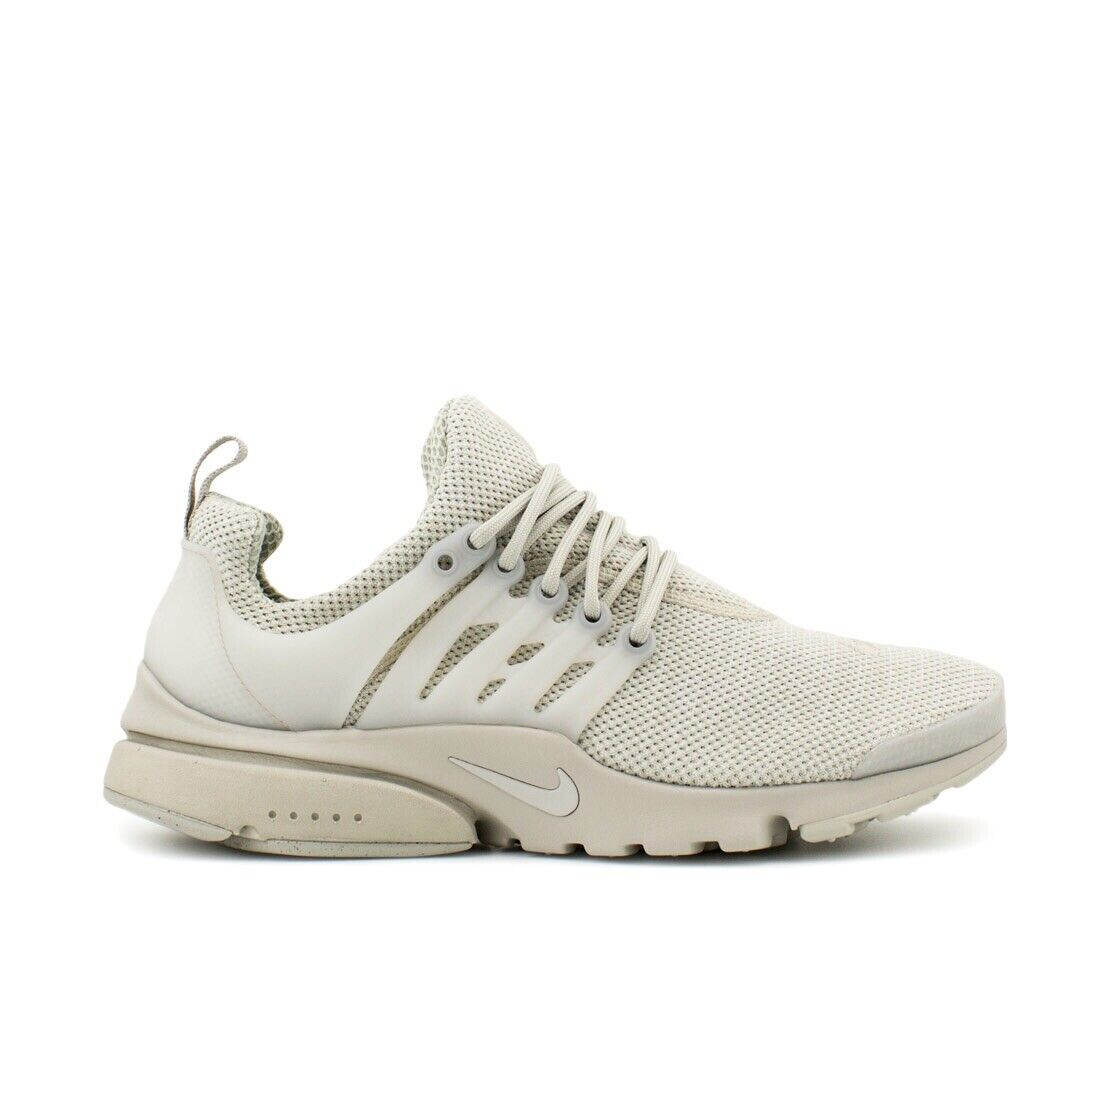 Nike Air Presto Ultra BR Breathe (Men's Size 11, Pale Grey) 898020-002